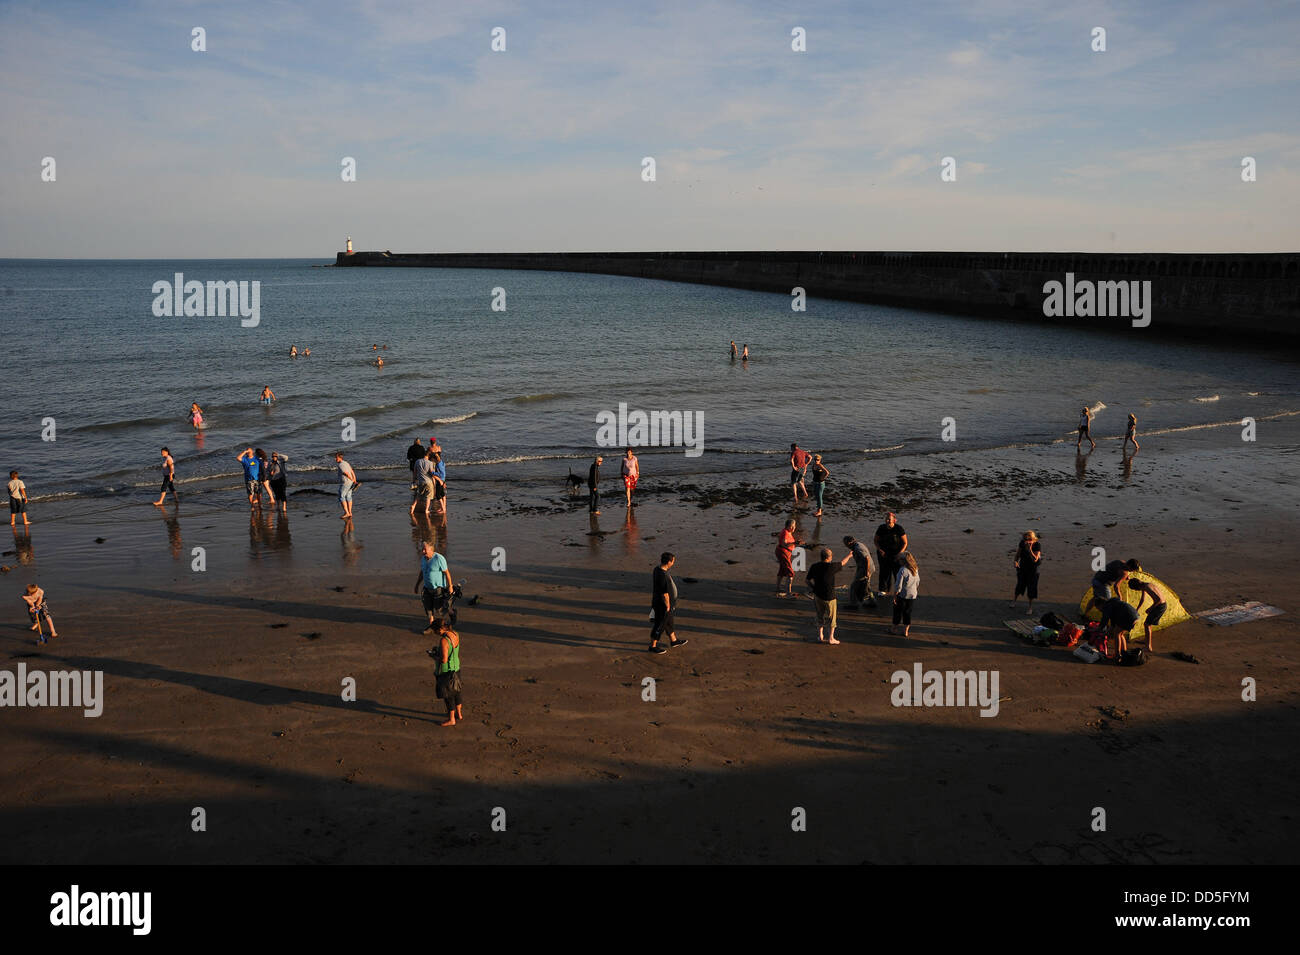 Newhaven, Sussex, UK. 26 Aug, 2013. Local residents from Newhaven enjoy the bank holiday on the closed off beach Stock Photo